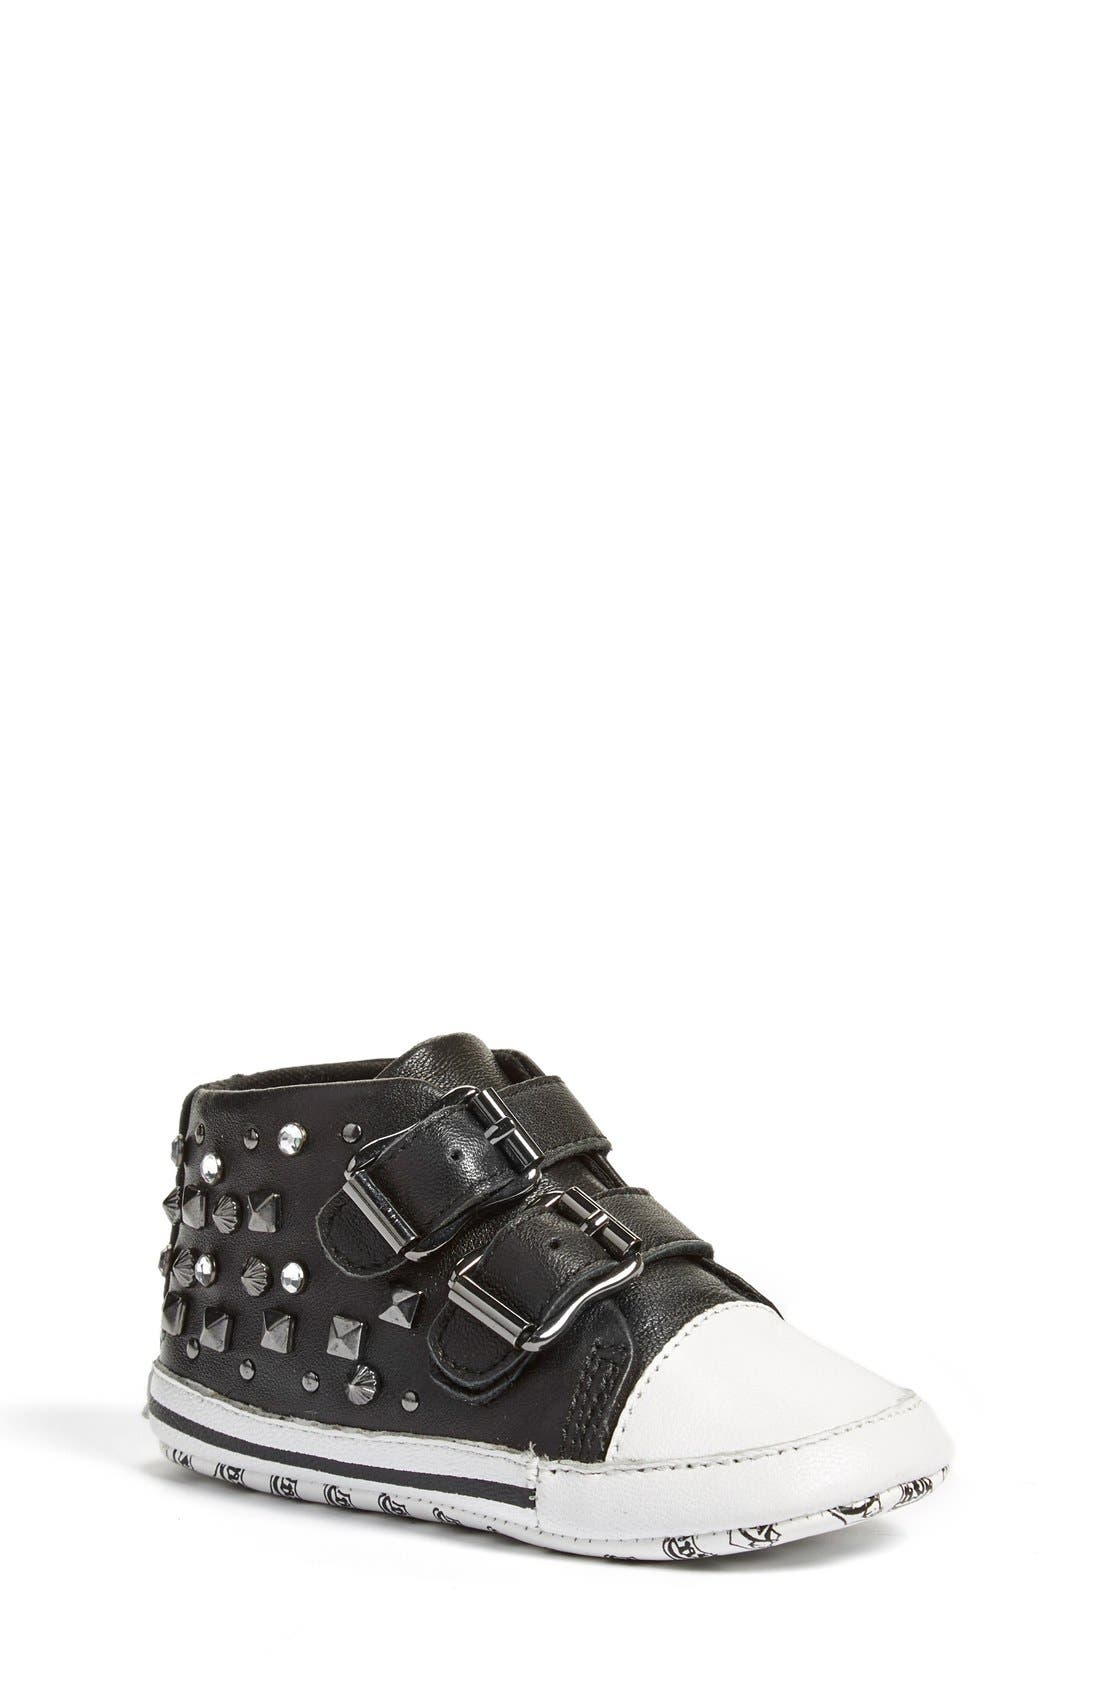 'Viper' High Top Crib Shoe,                         Main,                         color, Black Leather